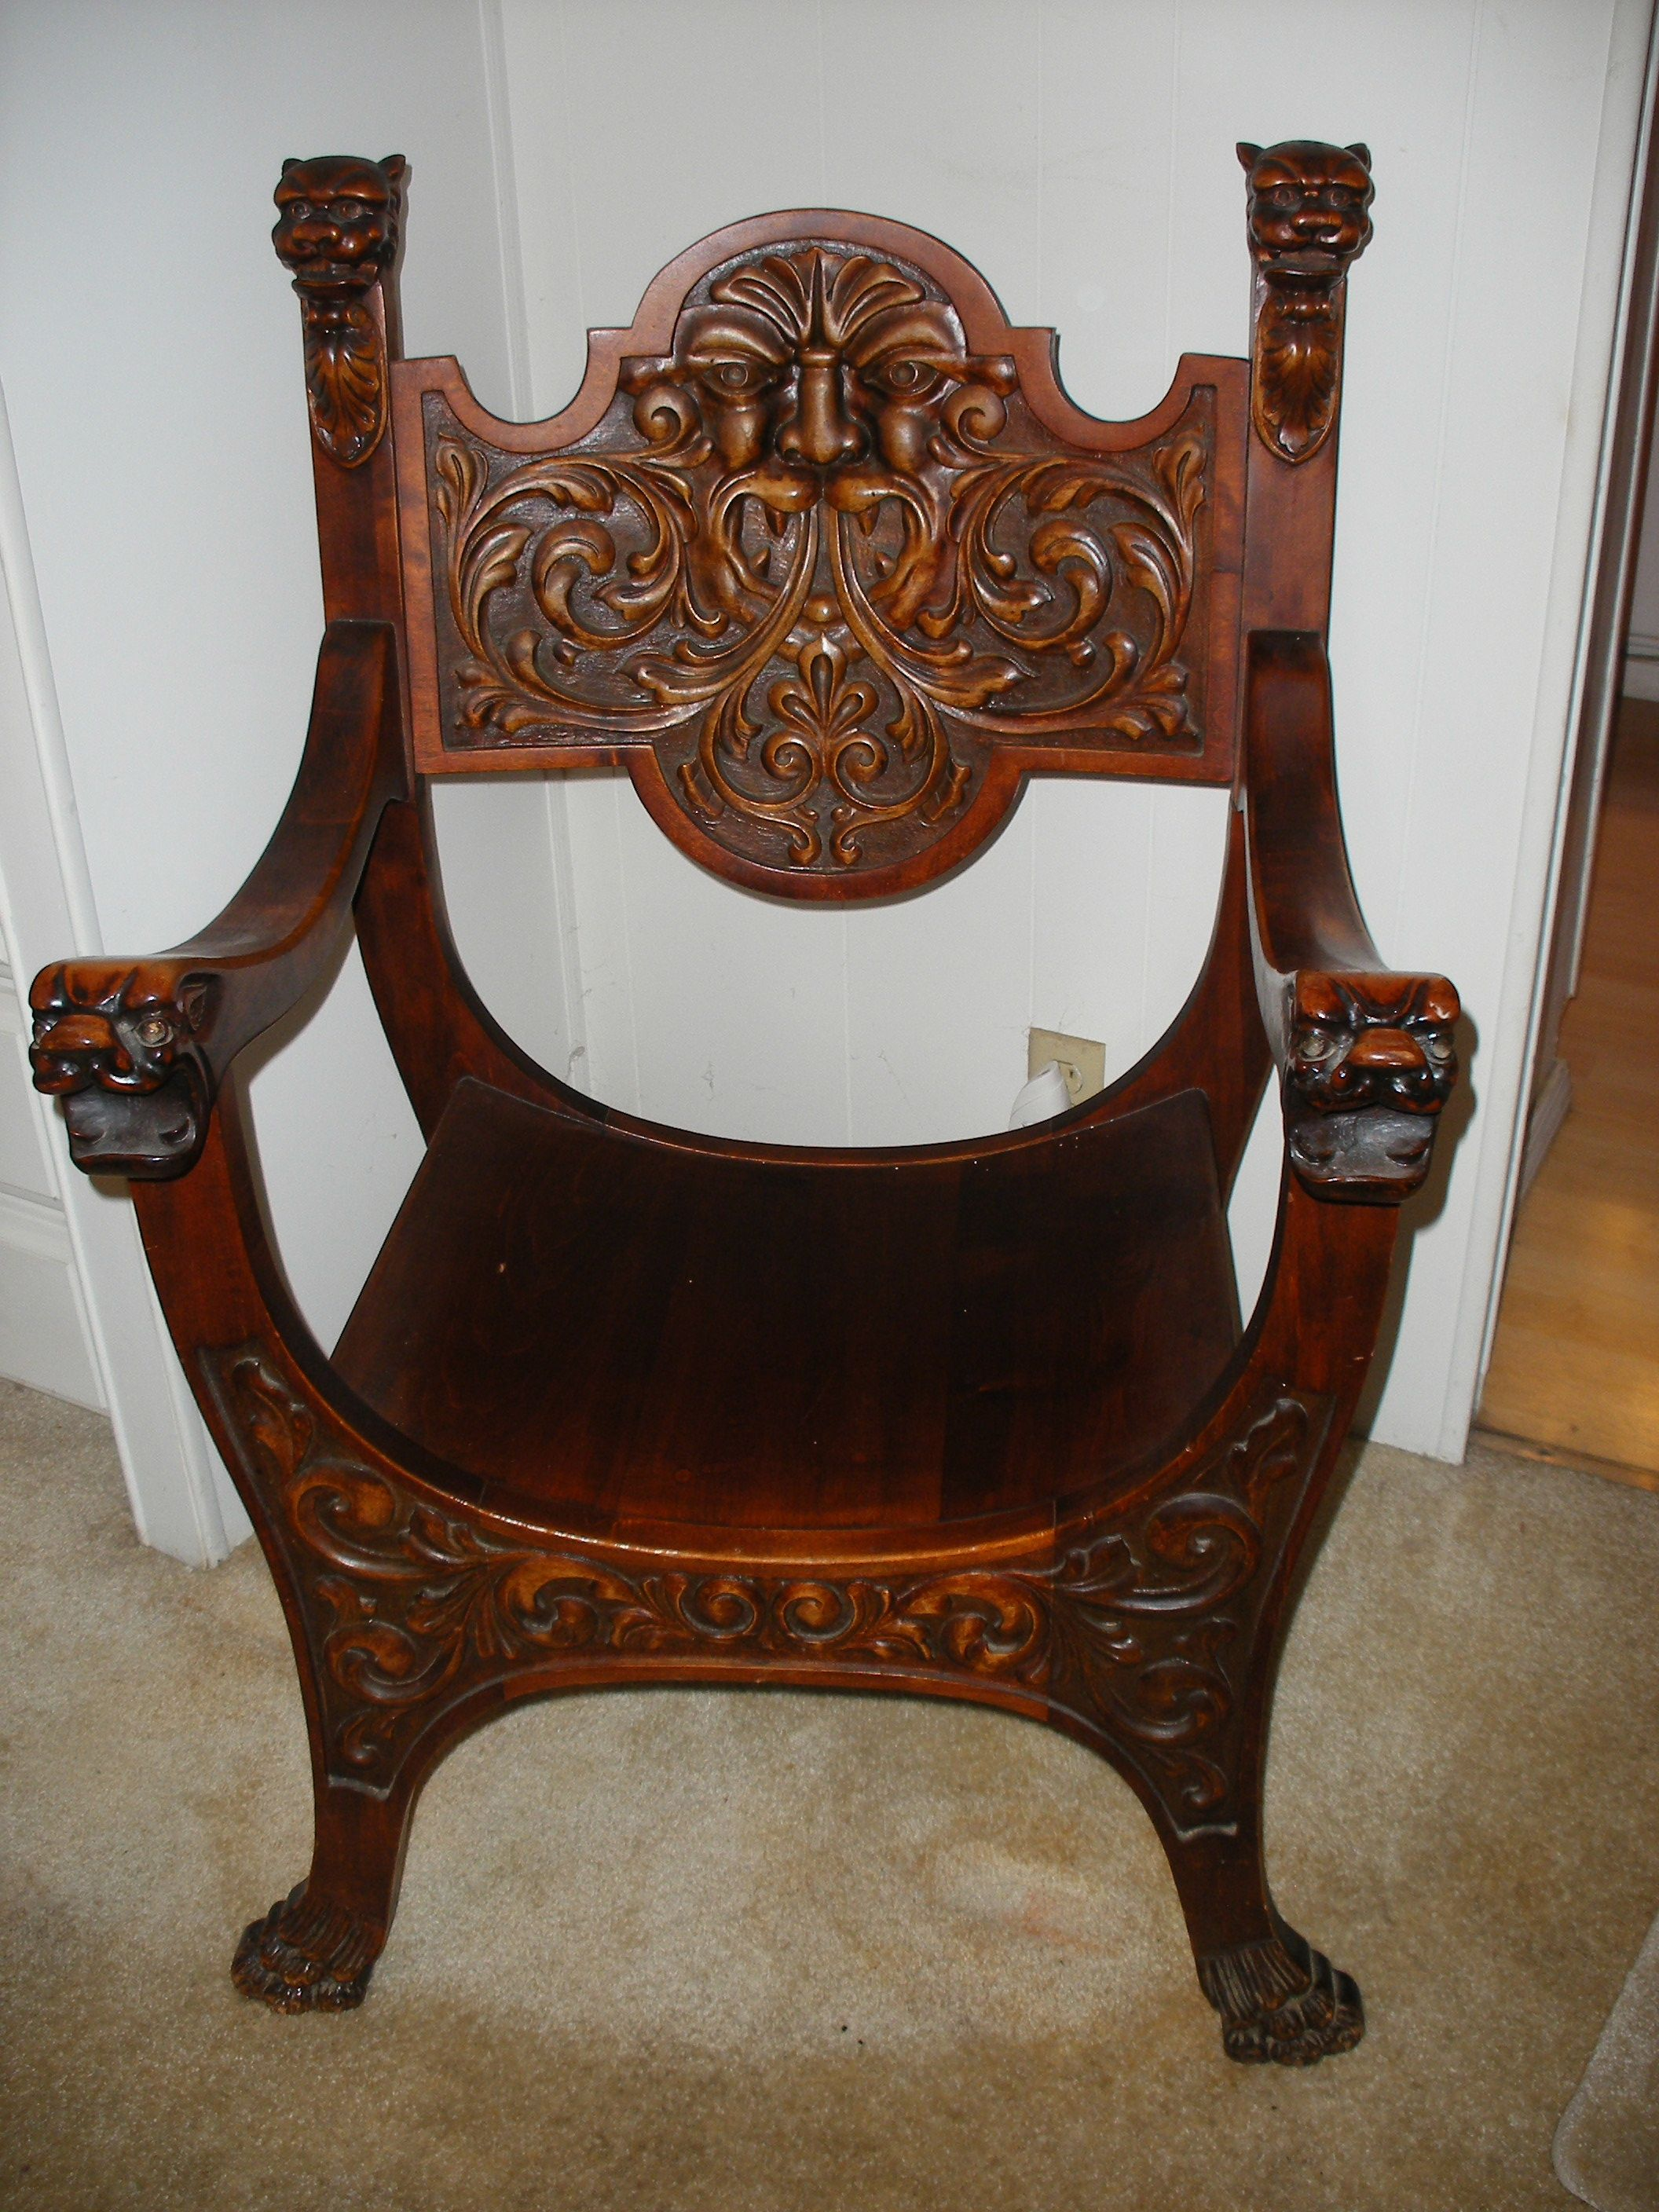 Lion carved chair stomps burkhardt woodcraft and